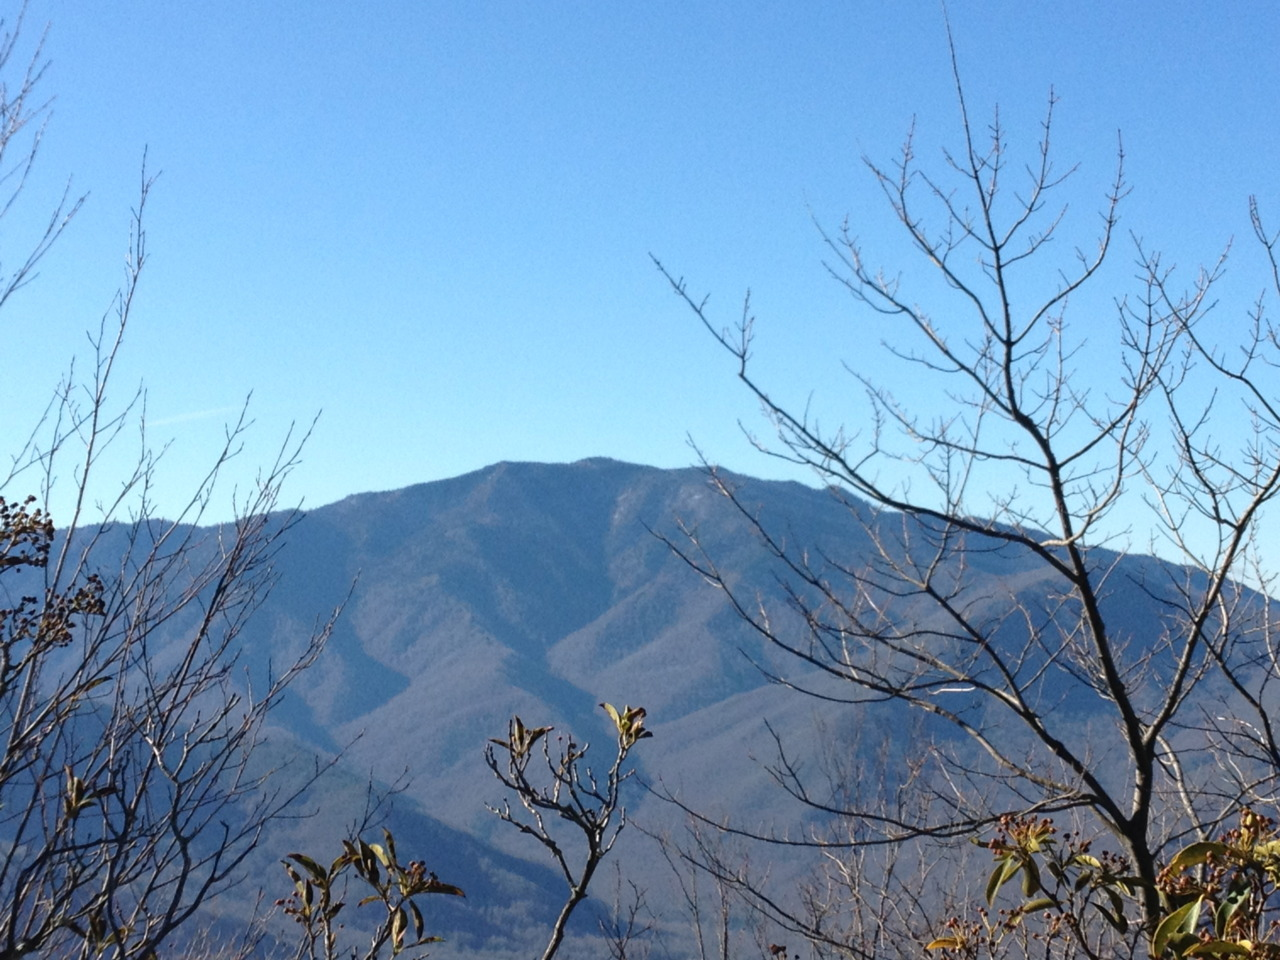 Mt. LeConte as viewed from the unmaintained Greenbrier Pinnacle Trail.